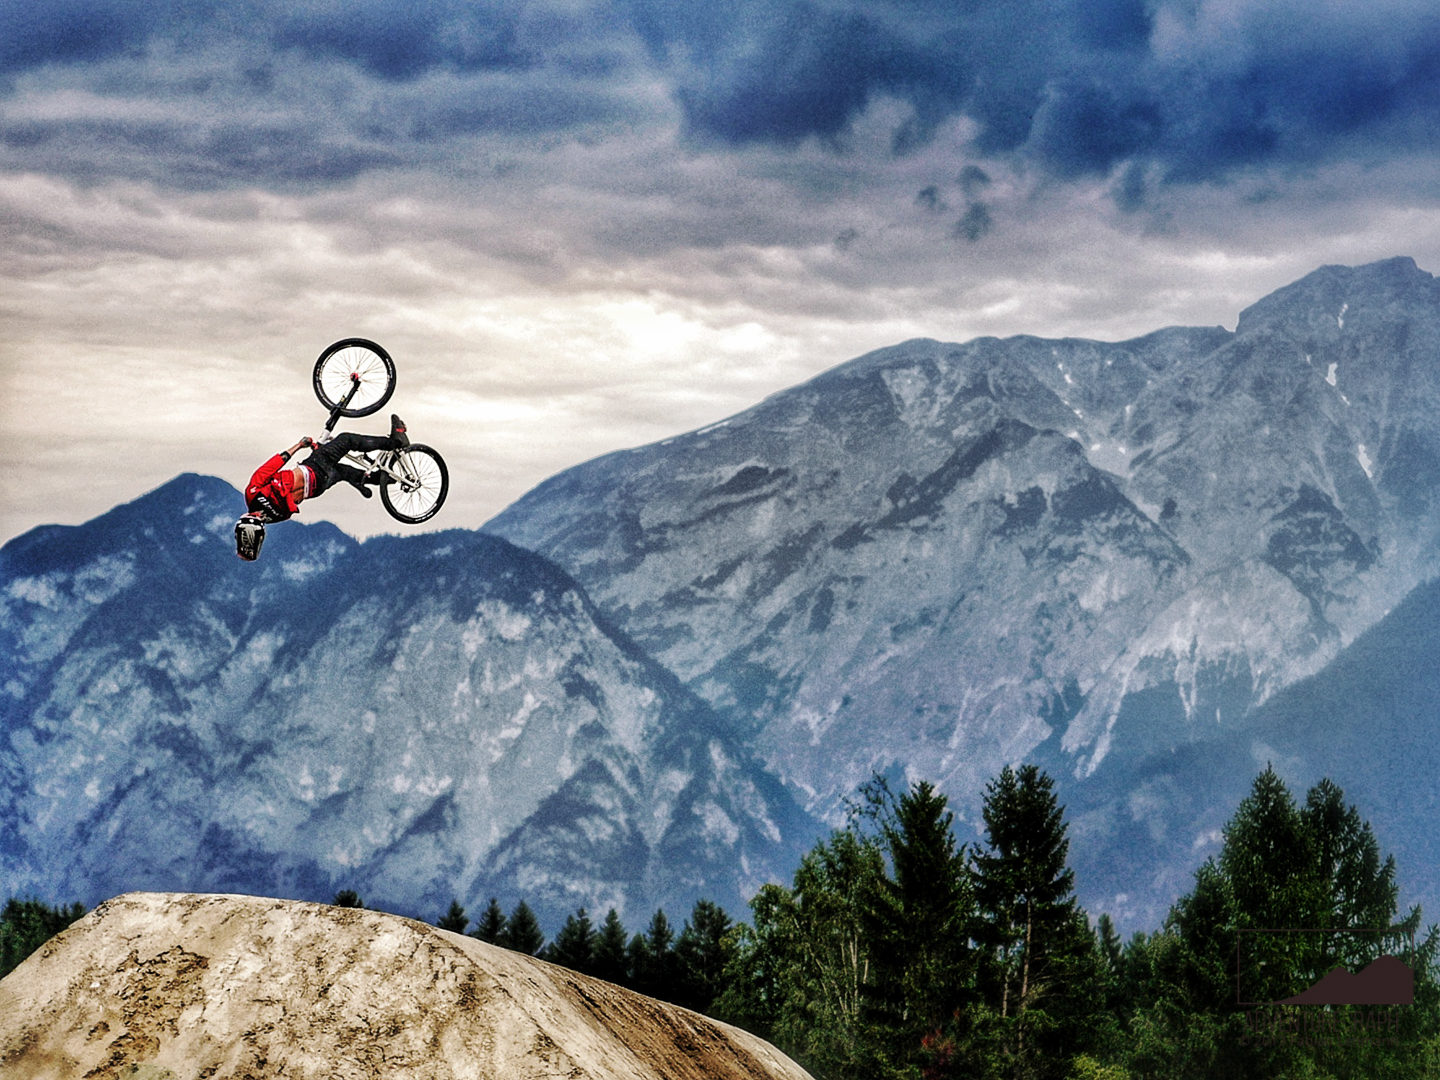 High-quality photograph of the slopestyle bike sport event Crankworx Innsbruck.